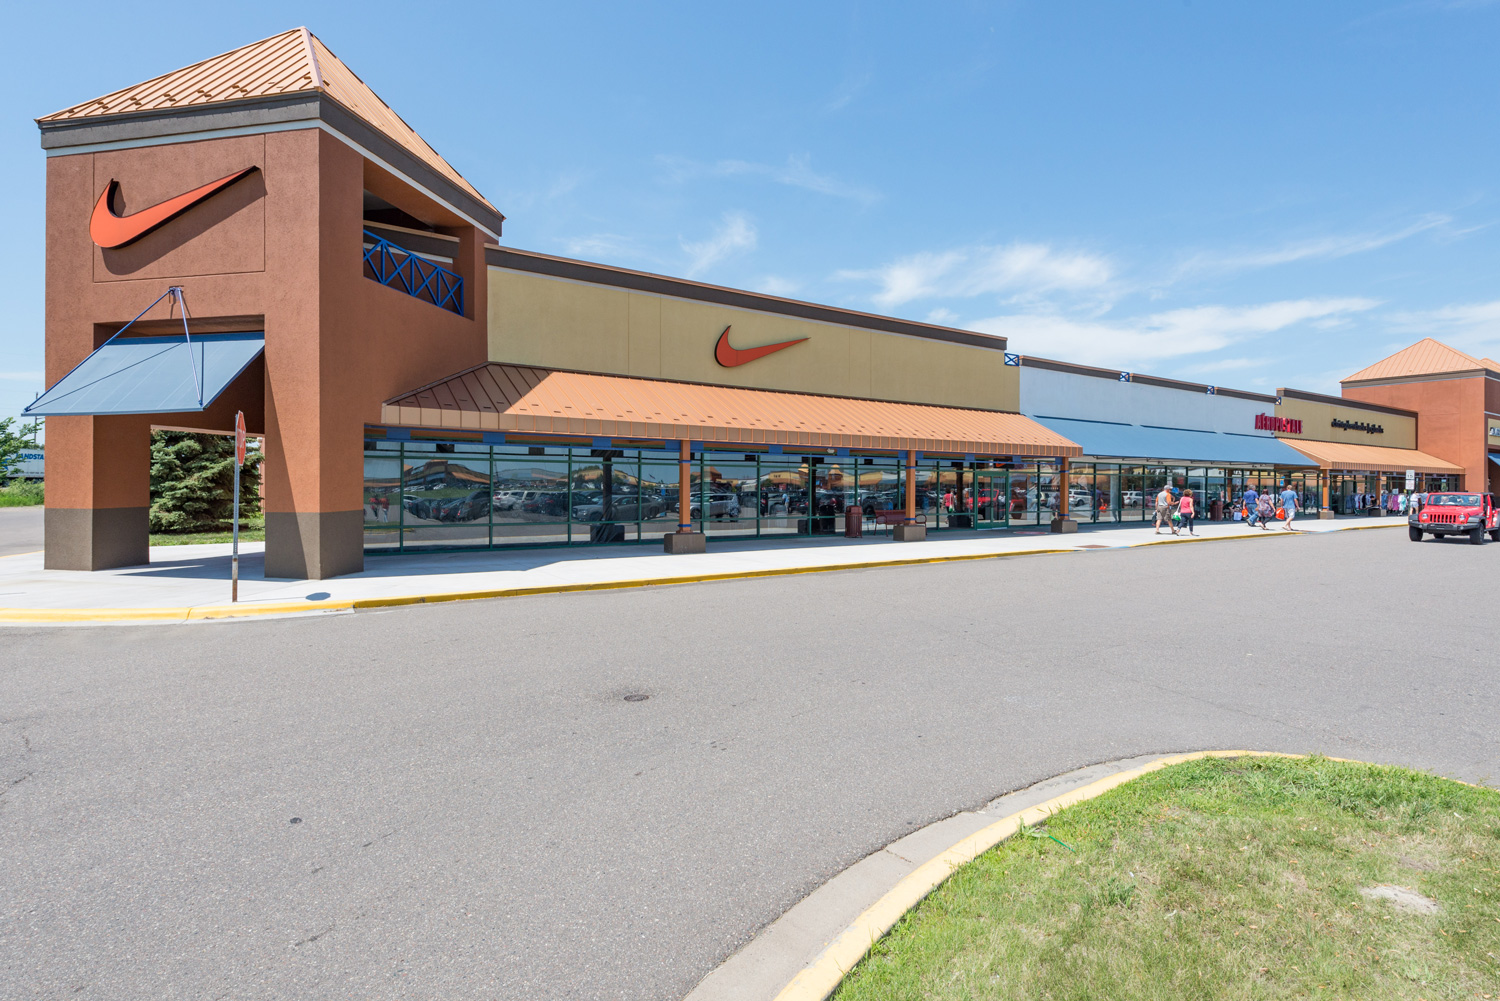 The biggest information directory about all outlet shopping centers, Outlet stores and Outlet malls in the United States. It contains the cheapest factory stores and brands in the United States.